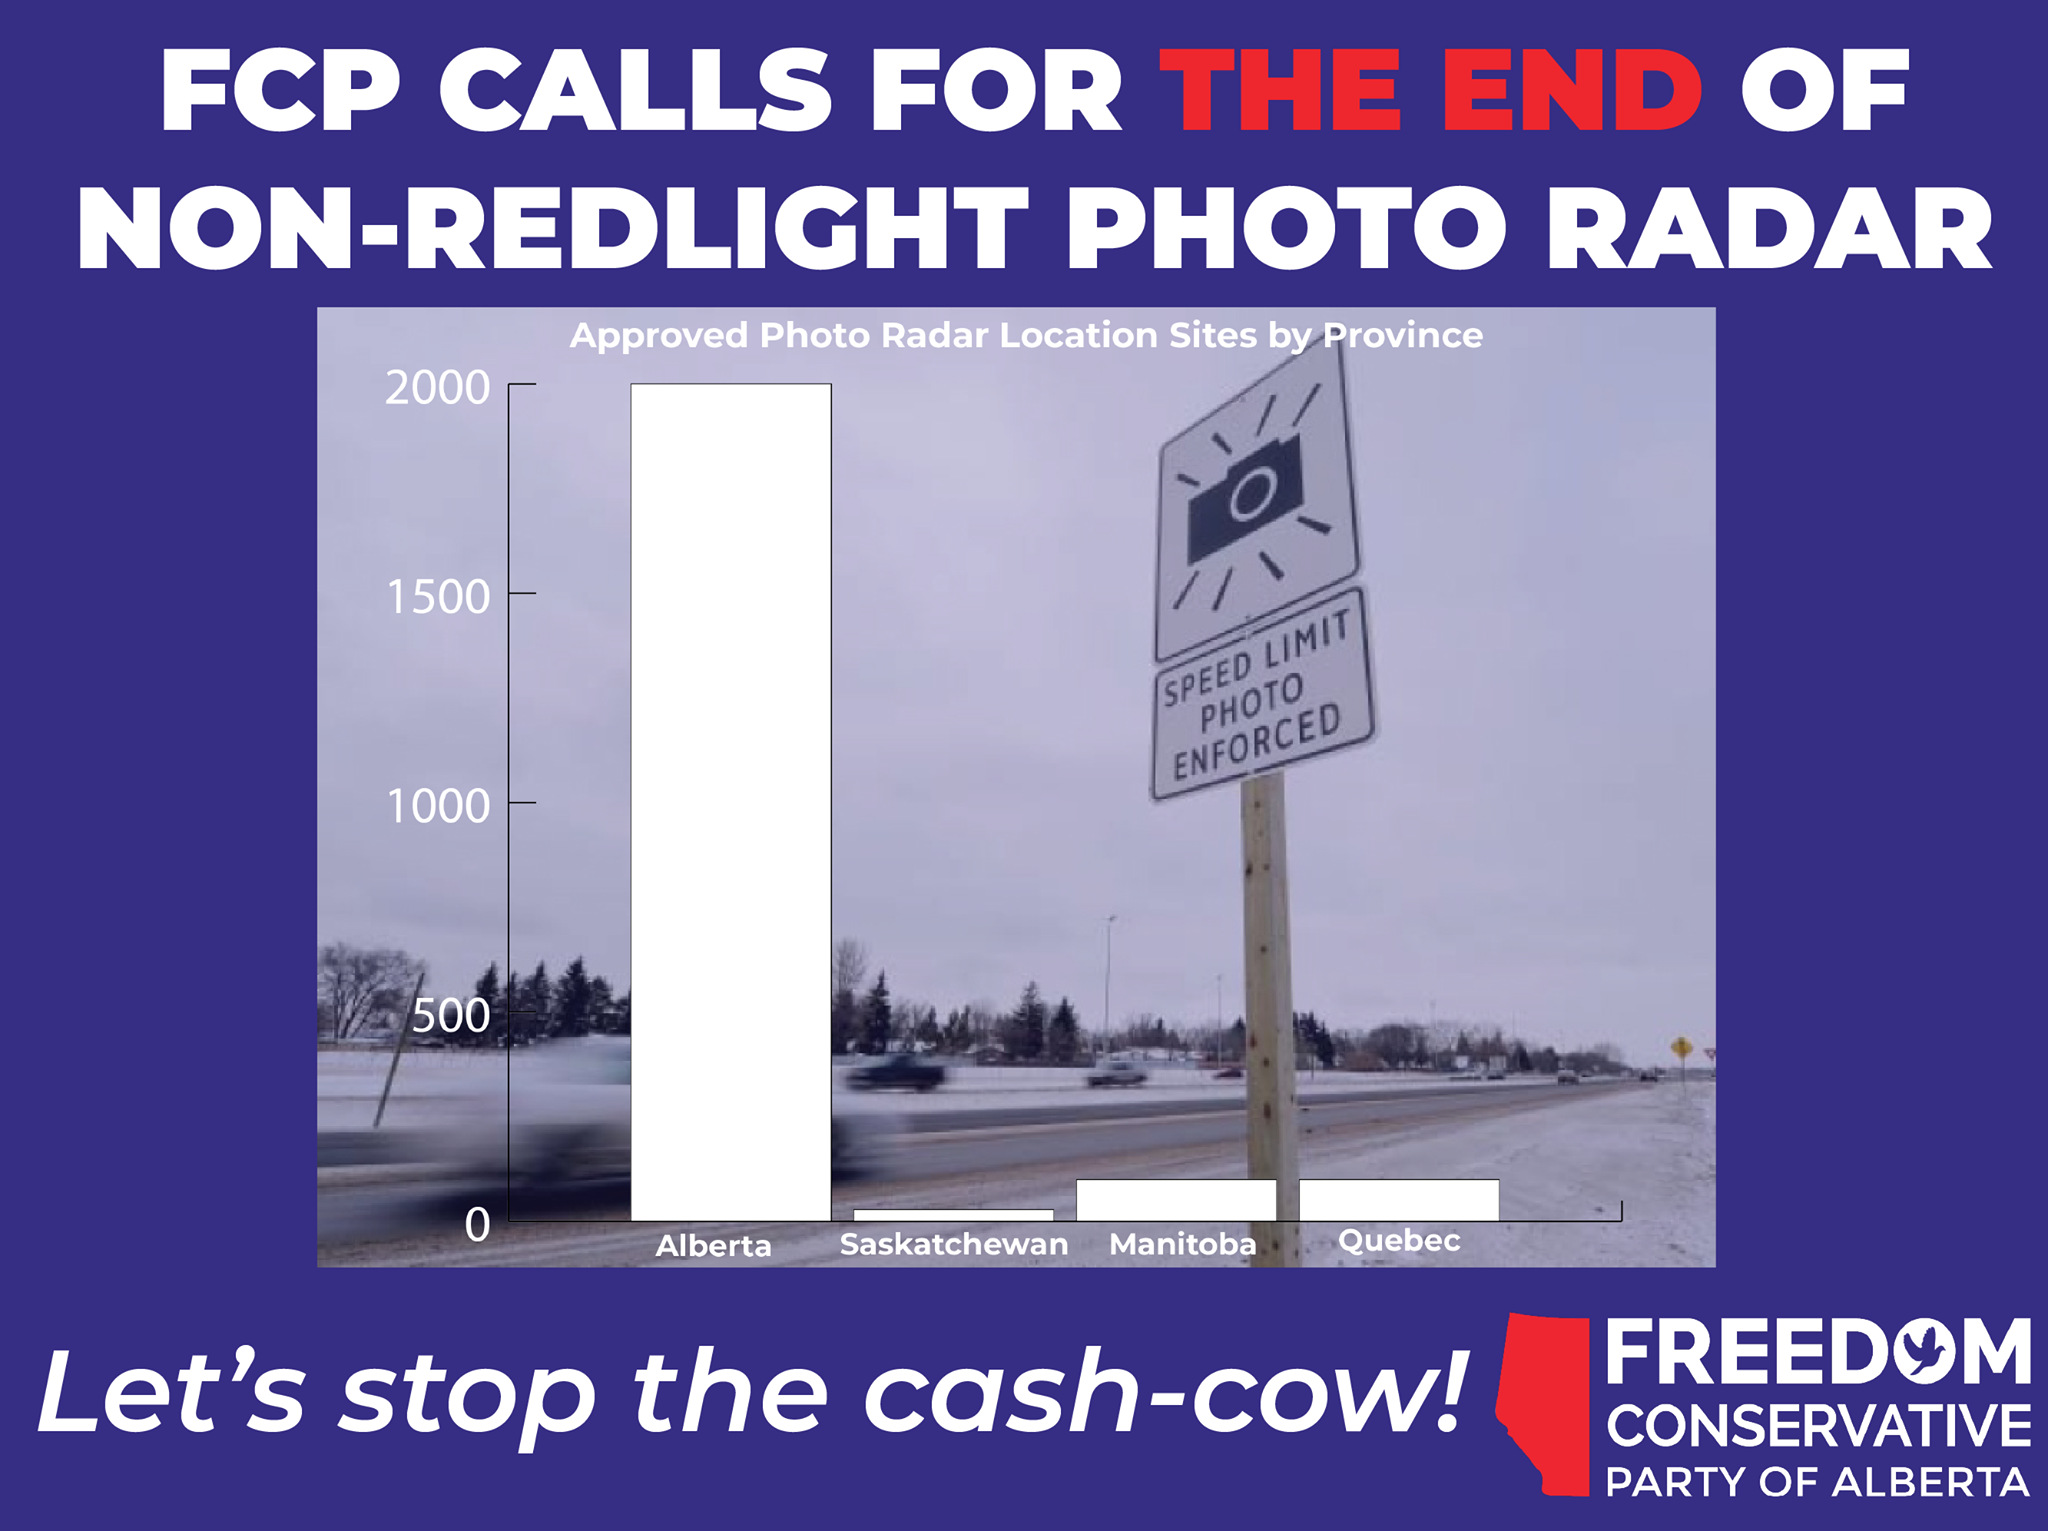 RELEASE: FCP Calls For Legislation On Banning Predatory Photo Radar Locations